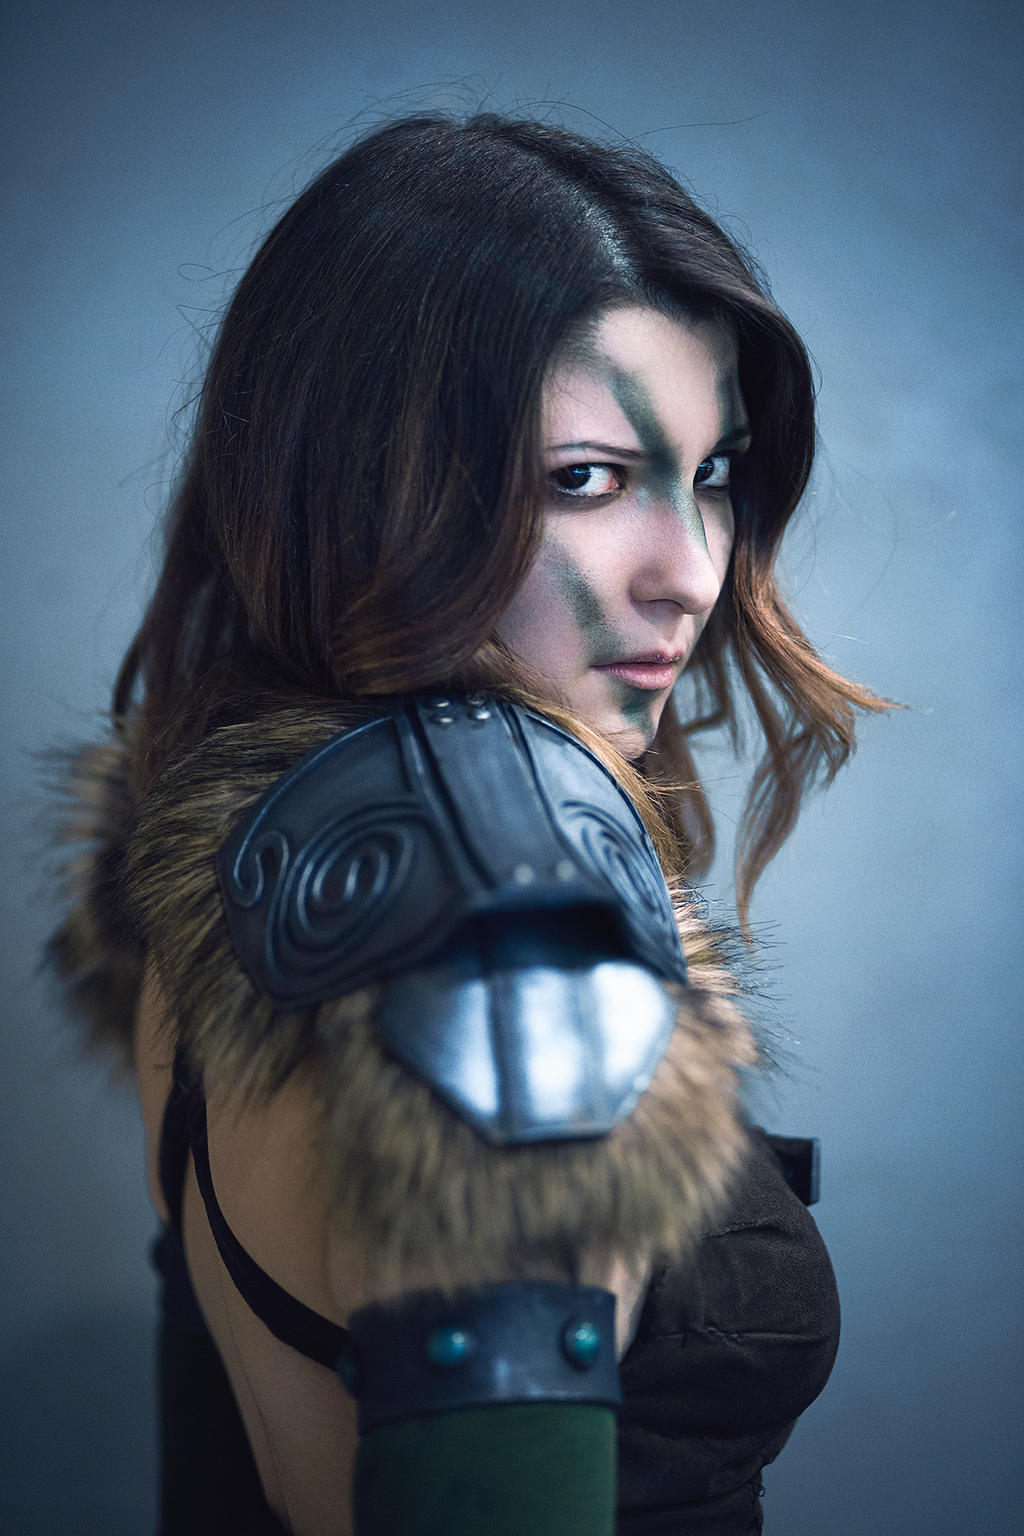 aela the huntress skyrim cosplay by dragunovacosplay on